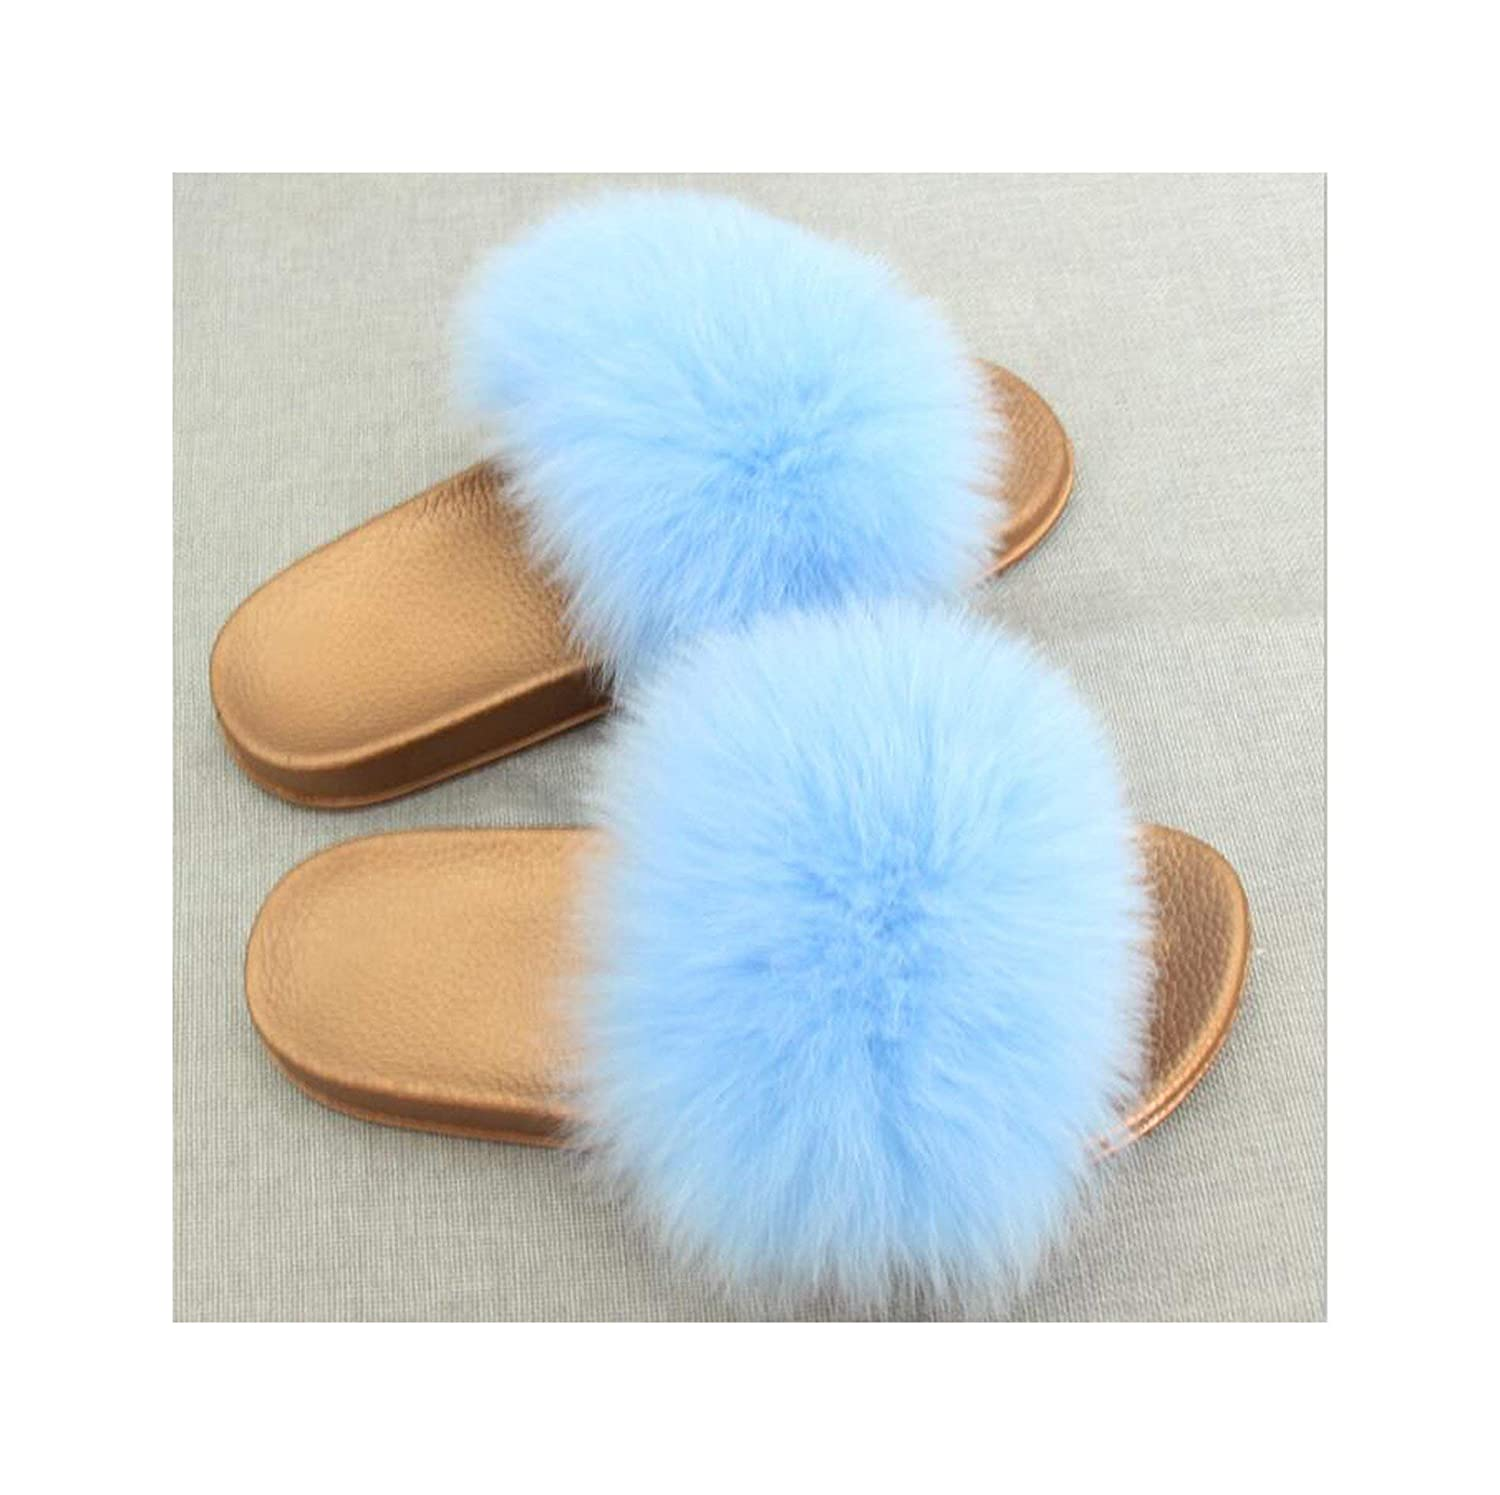 8 Zalin Women's Summer Genuine Fox Fur Slippers PVC Flat Indoor Non-Slip Slippers Furry Slippers